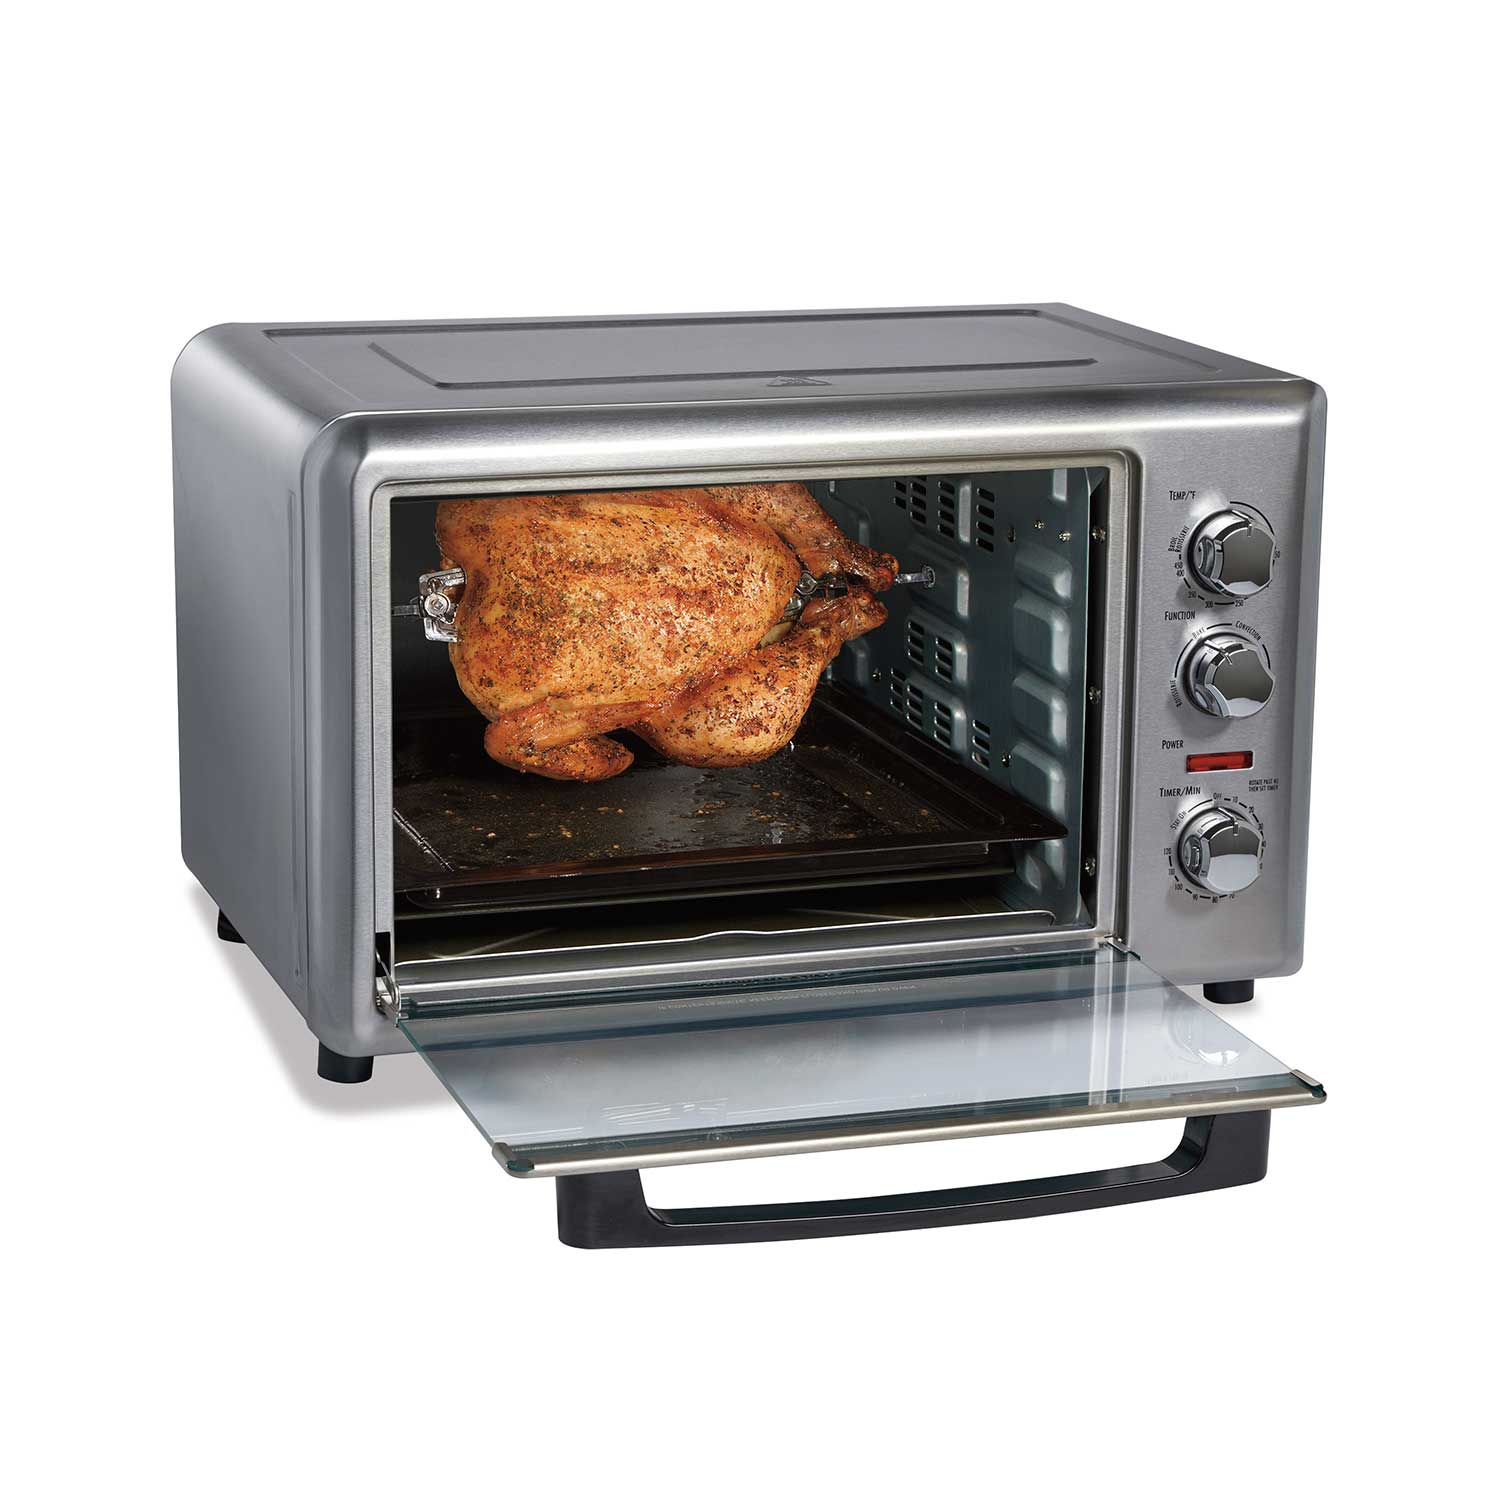 Hamilton Beach Countertop Oven With Convection And Rotisserie 31106